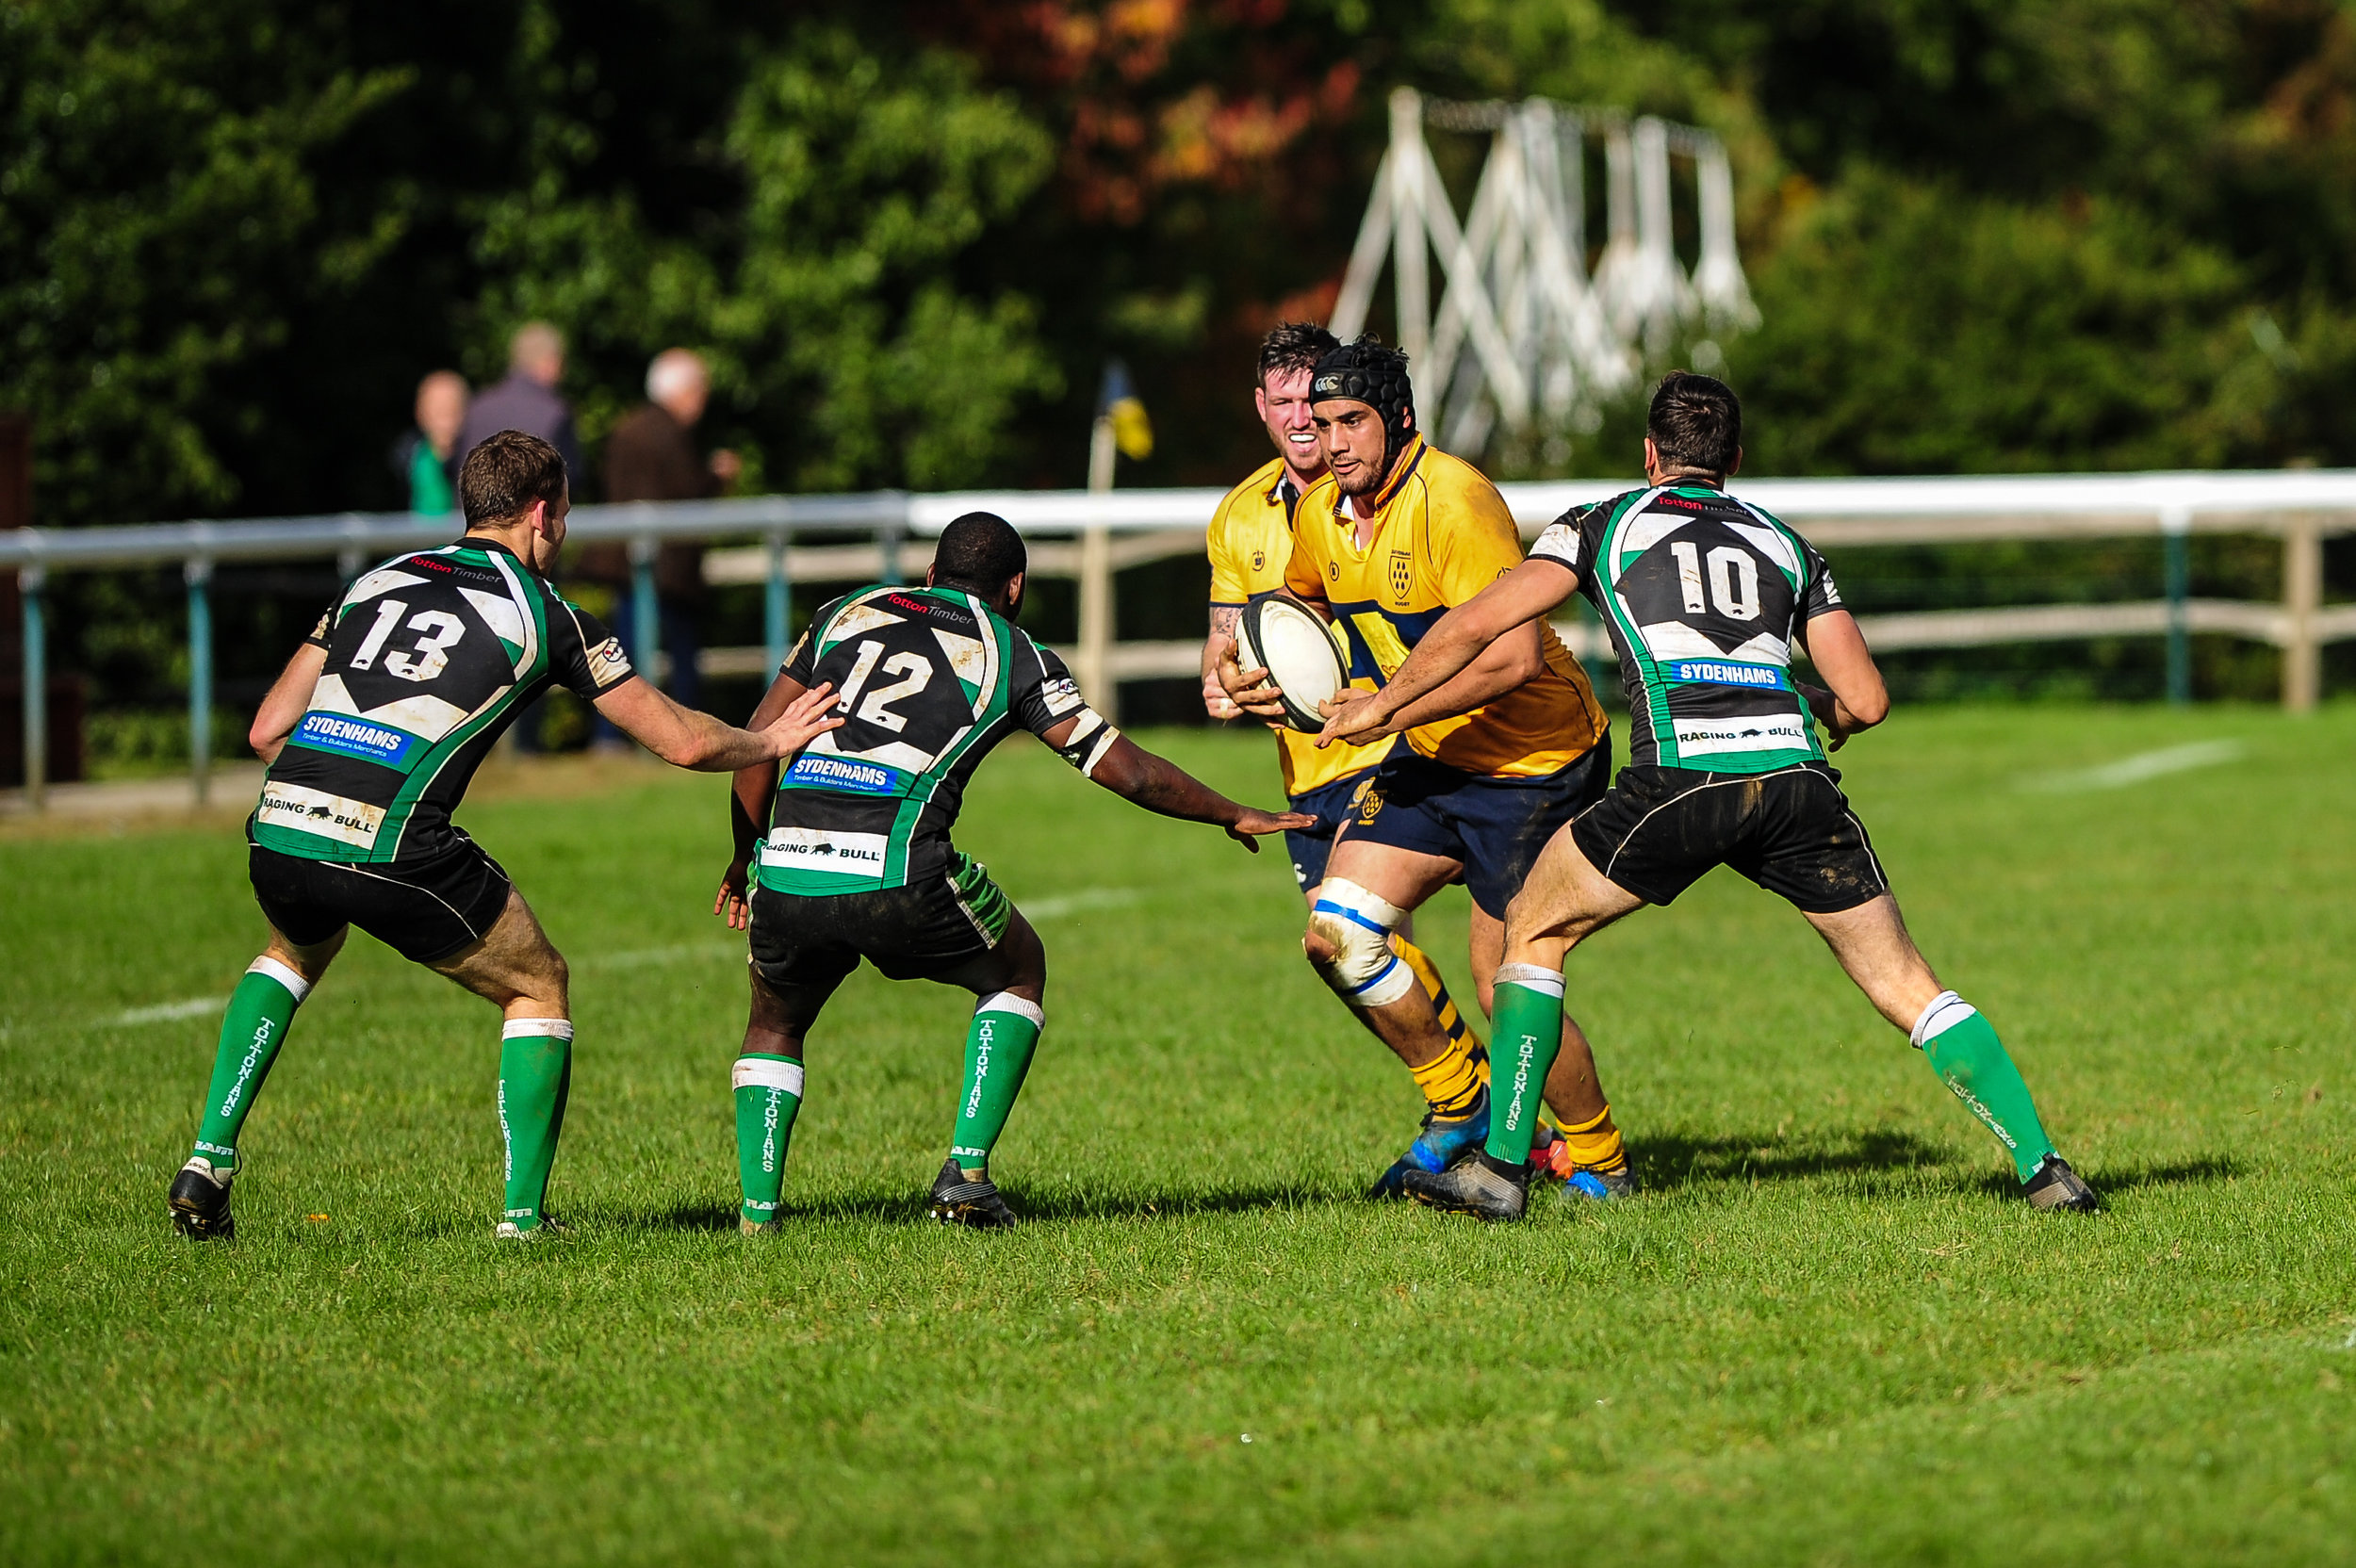 Alex Suttie tries to find his way through the Tottonians defence